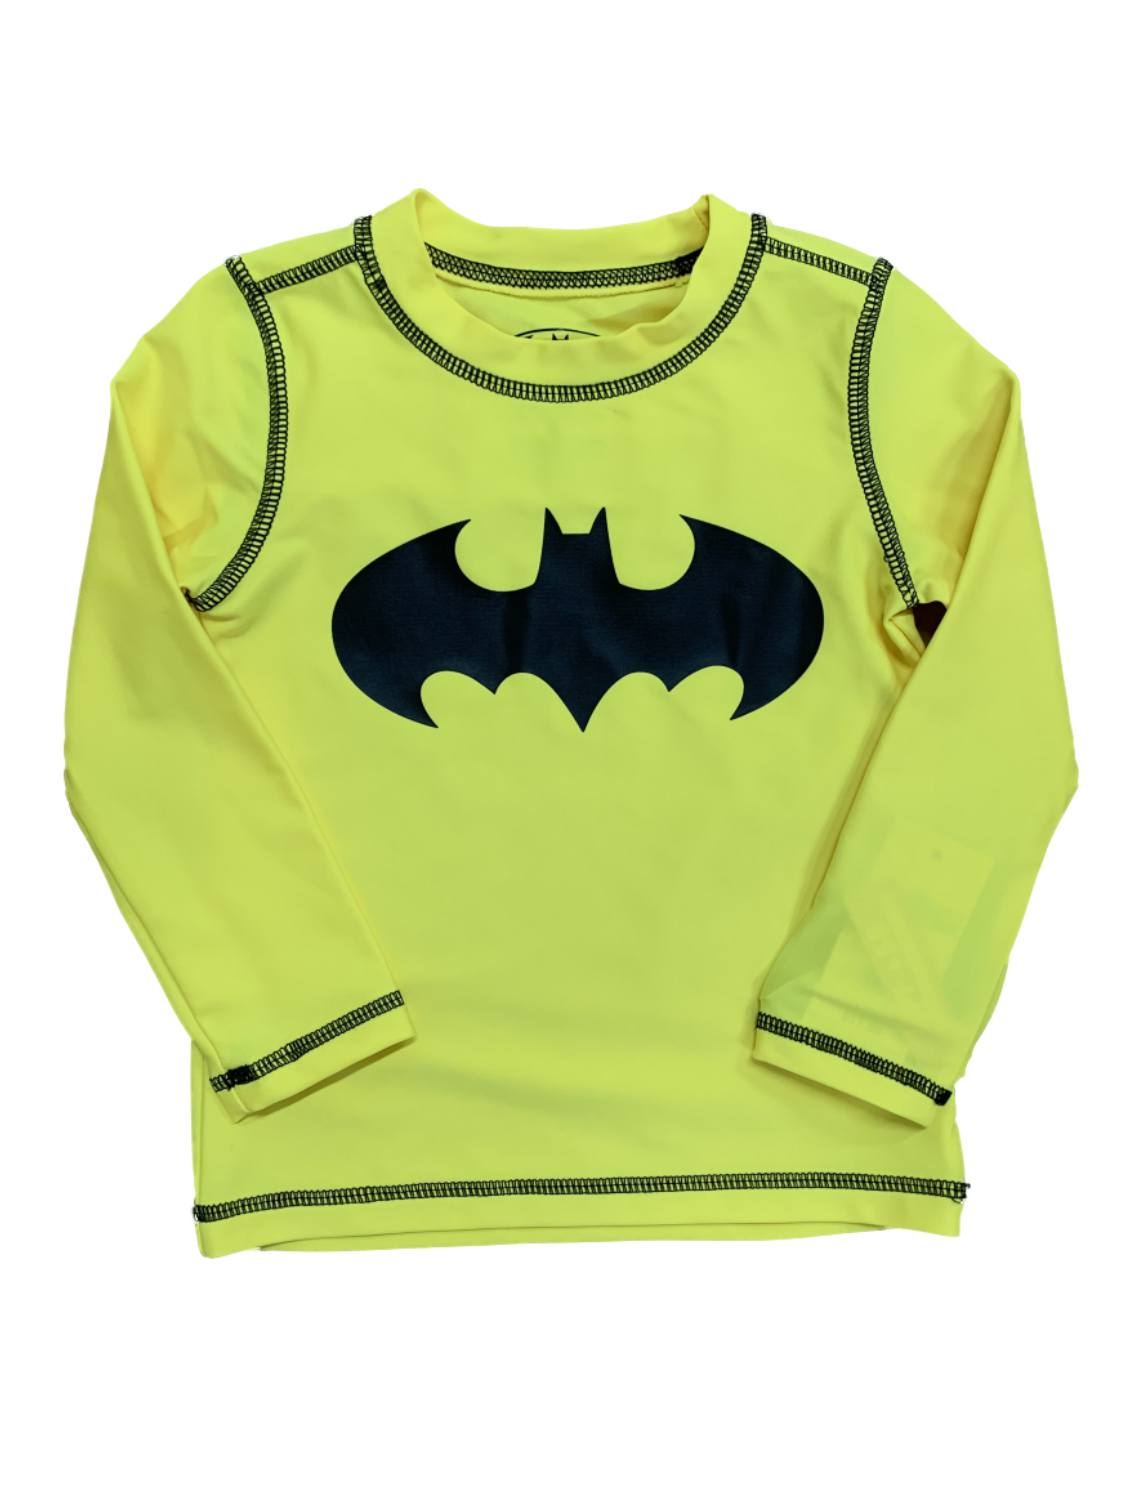 Yellow Batman Long-Sleeved T-Shirt for Babies Aged 3 to 24 Months Grey